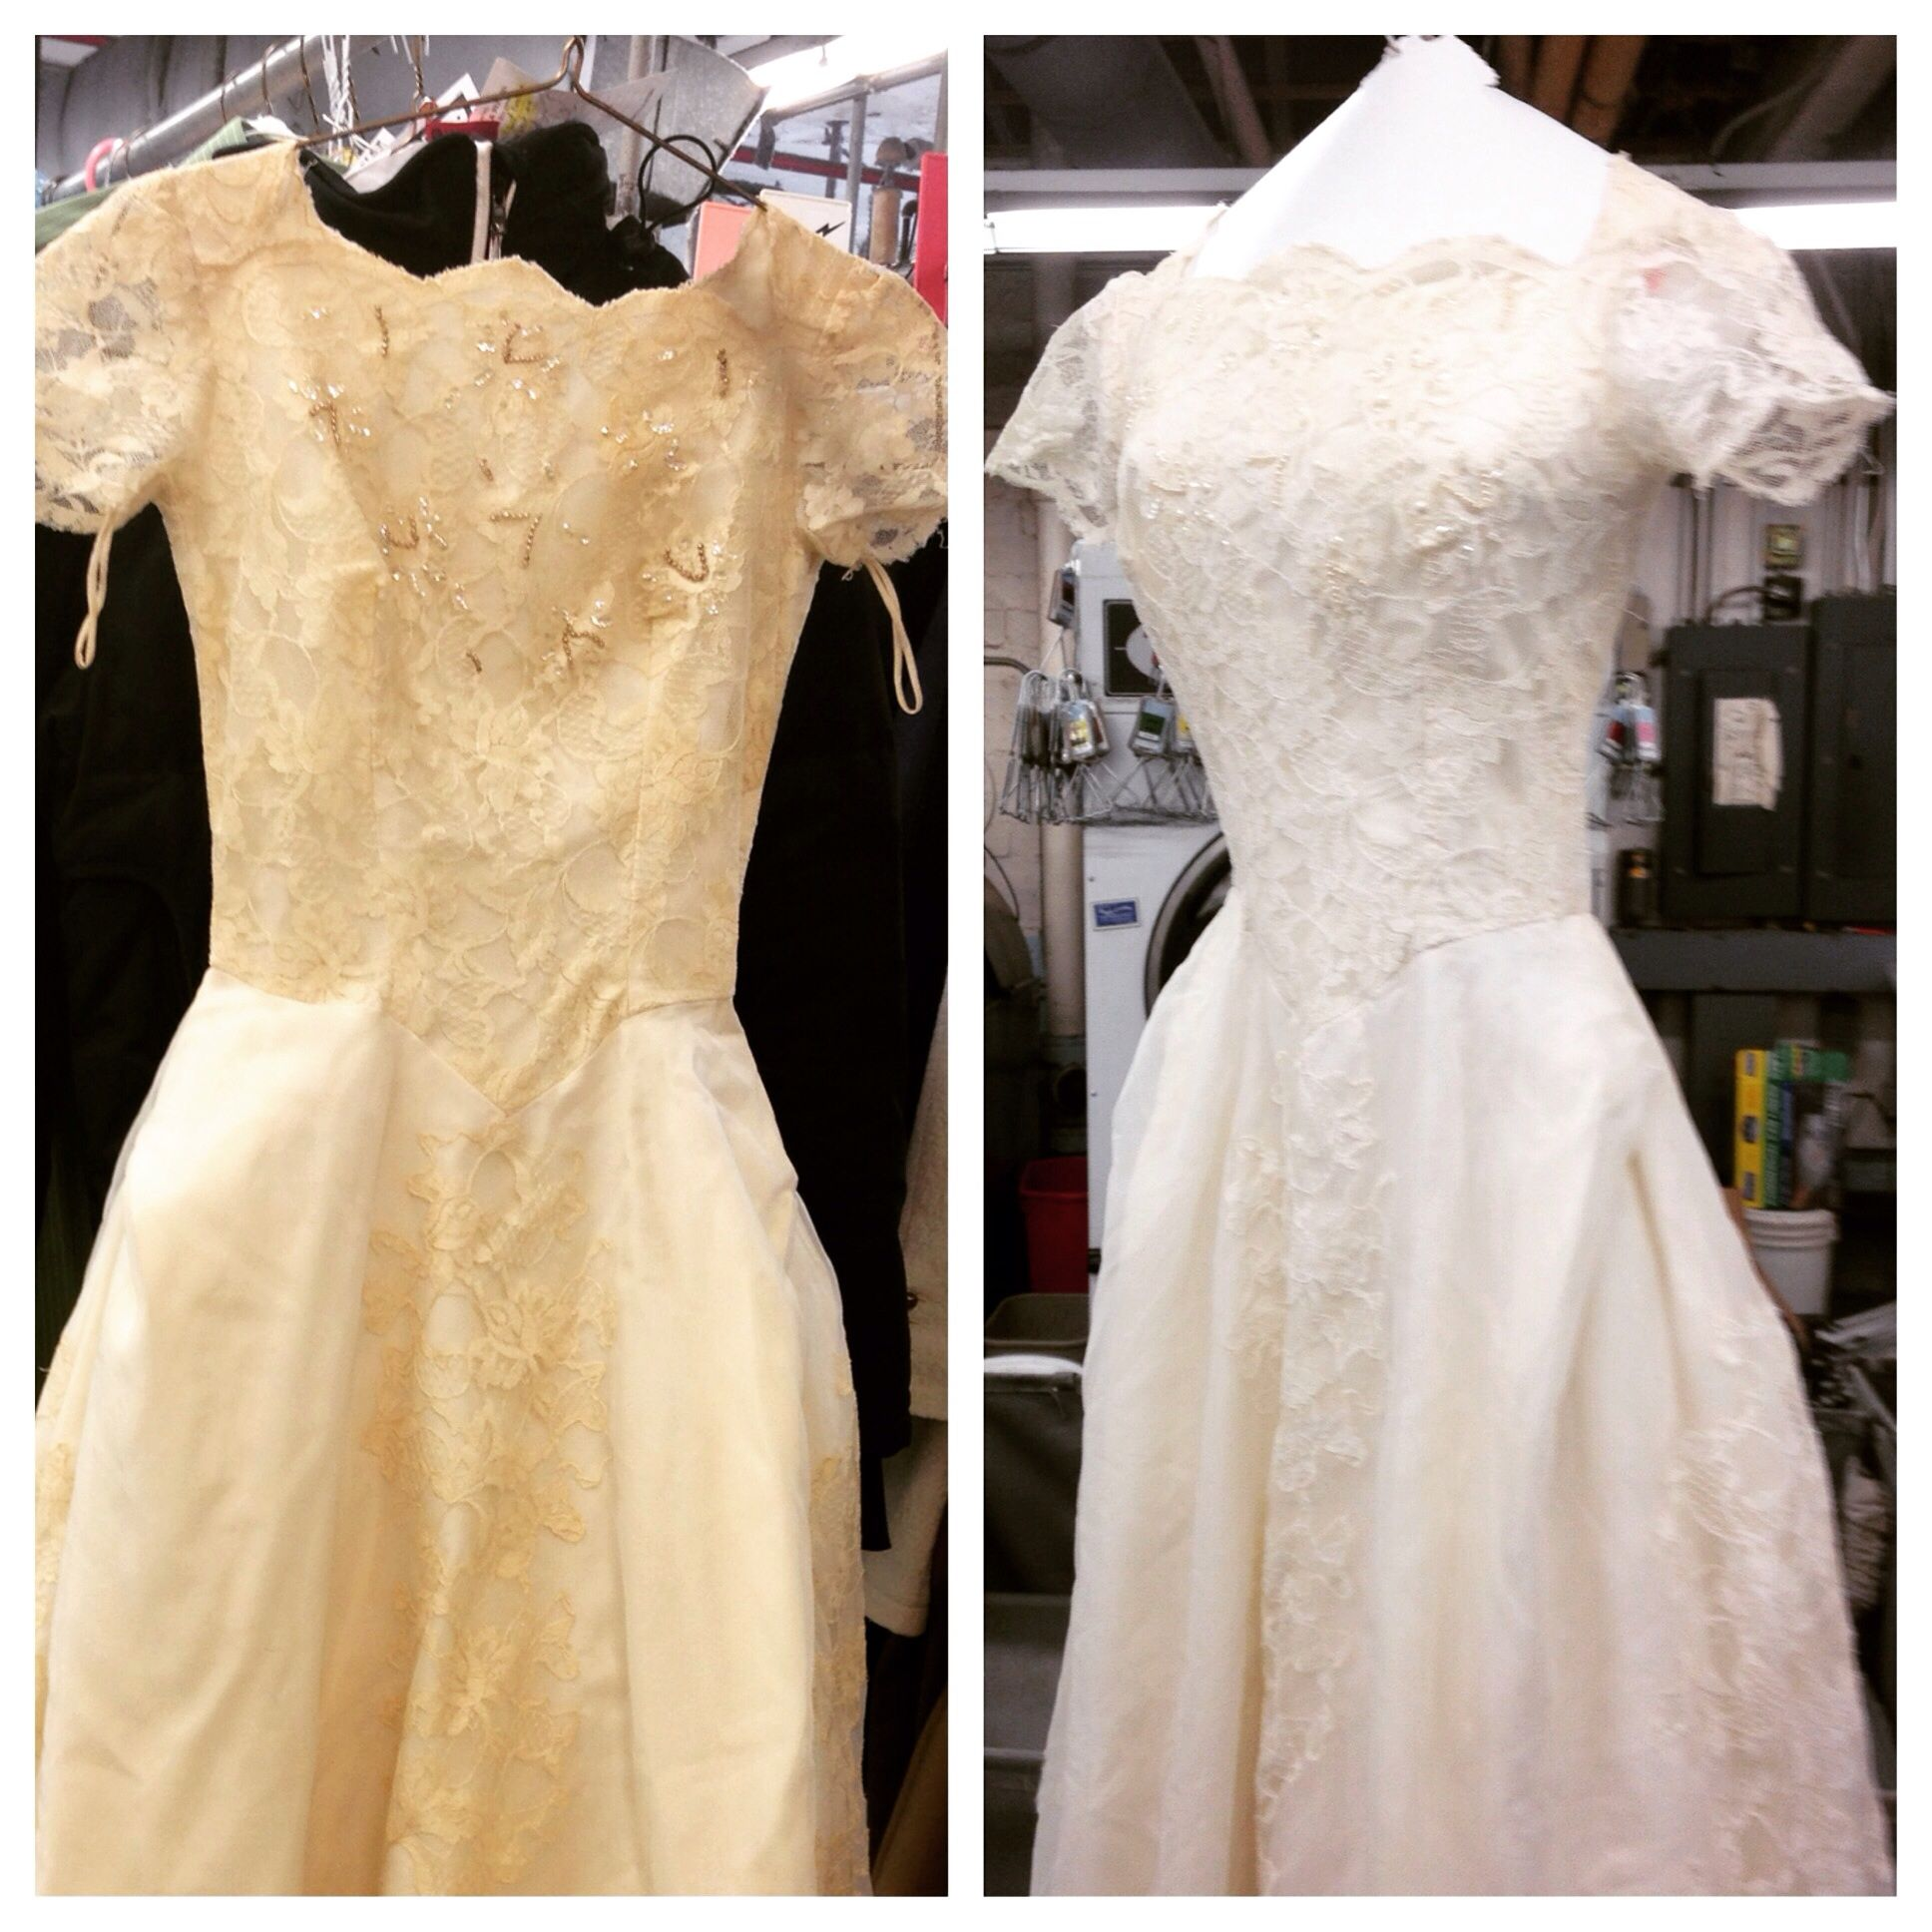 Restoration Wedding Gown: The Before And After Of The Vintage Wedding Dress Brought